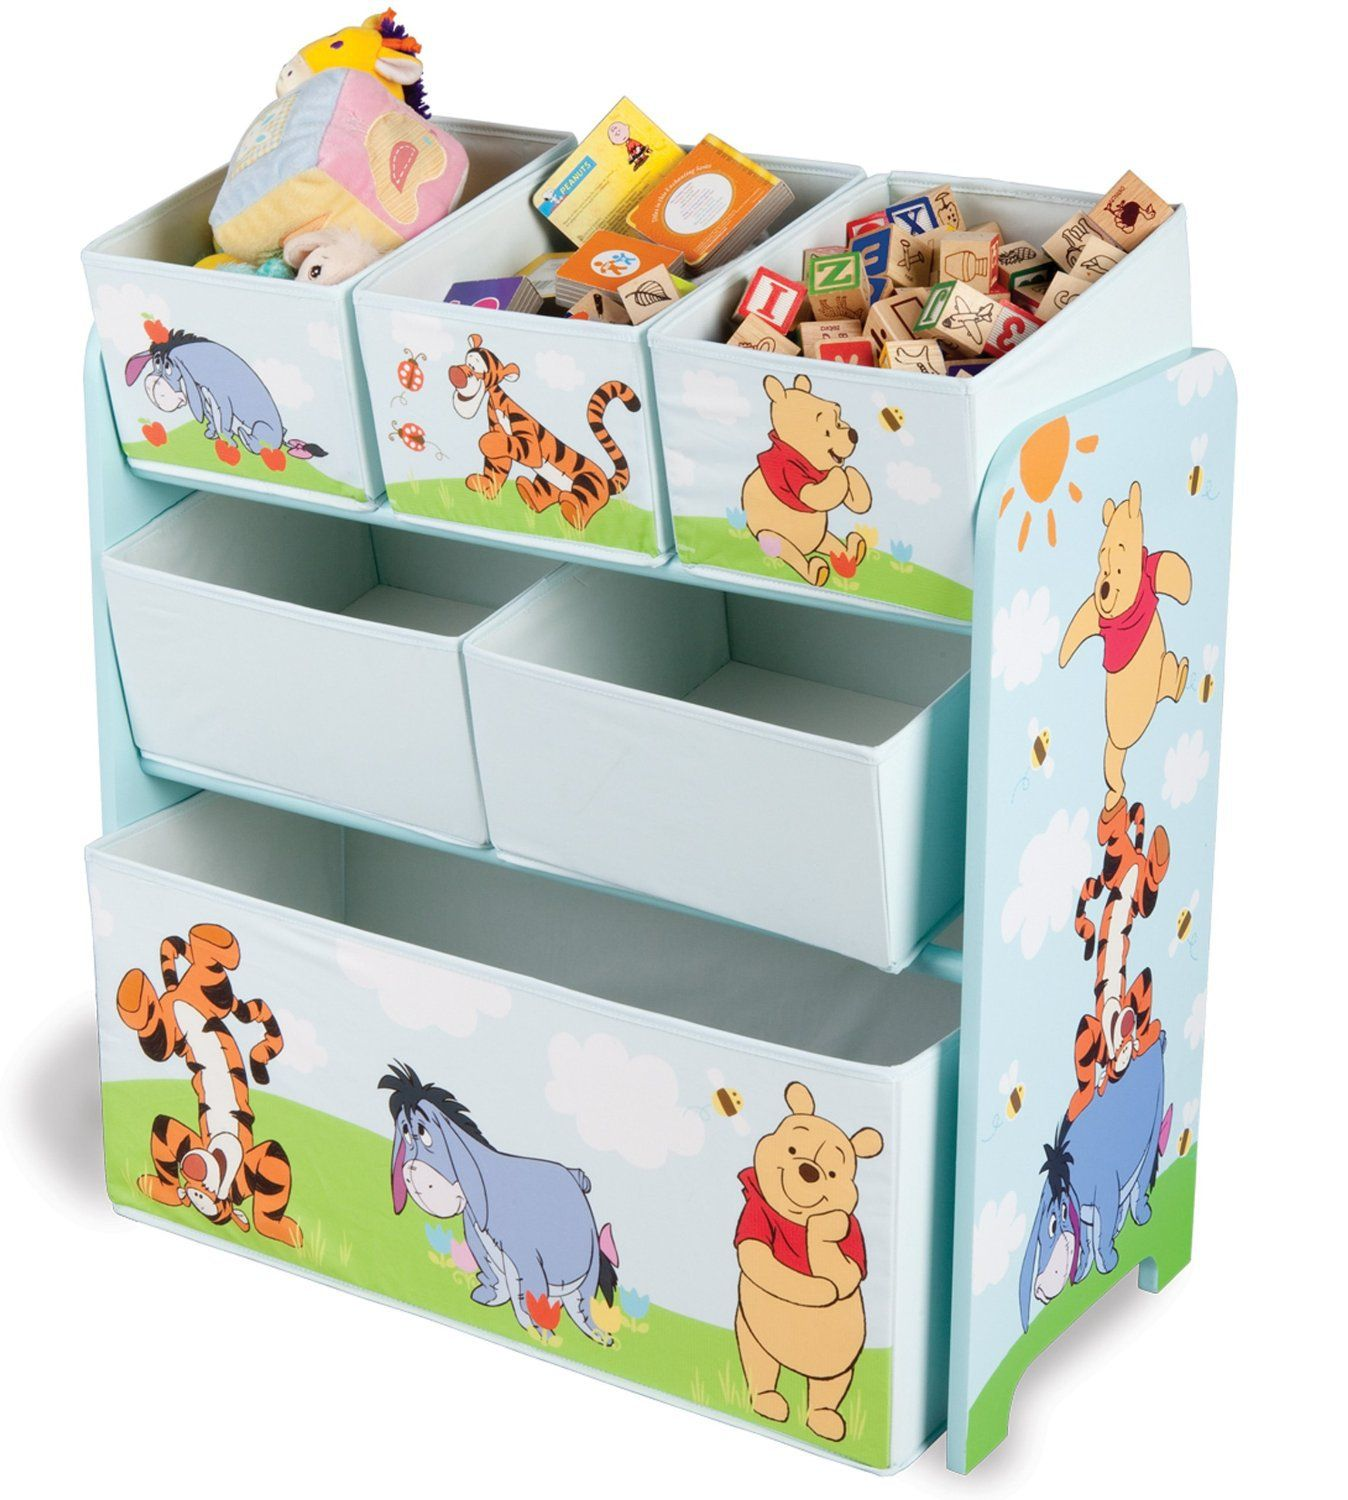 £32.45 (34% Off) Disney Winnie The Pooh Multi Bin Toy Organizer